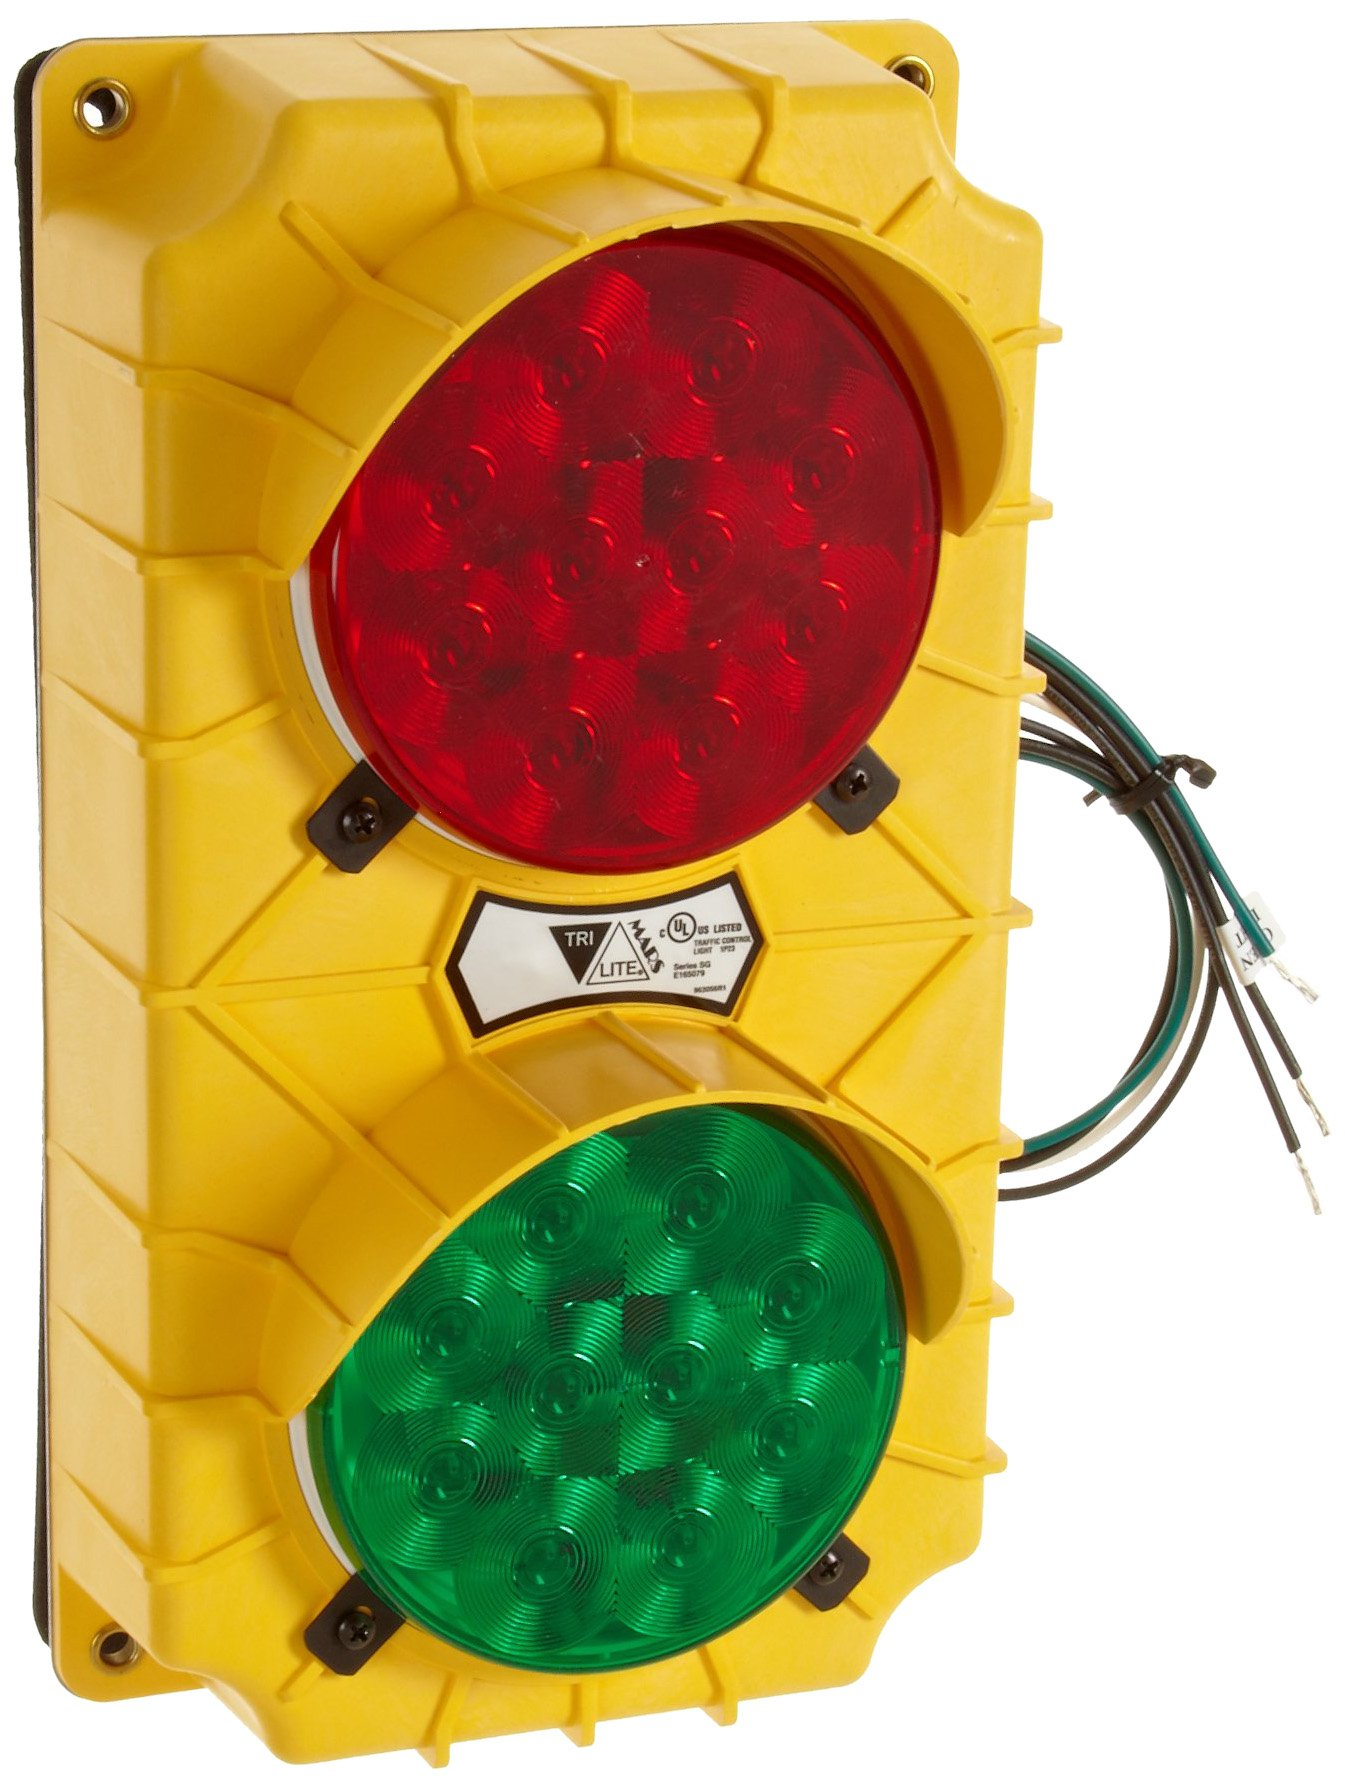 SG10 LED Stop and Go Light Signal System, 6-3/8-Inch Width X 11-3/8-Inch Height X 3-3/4-Inch Depth by IDEAL